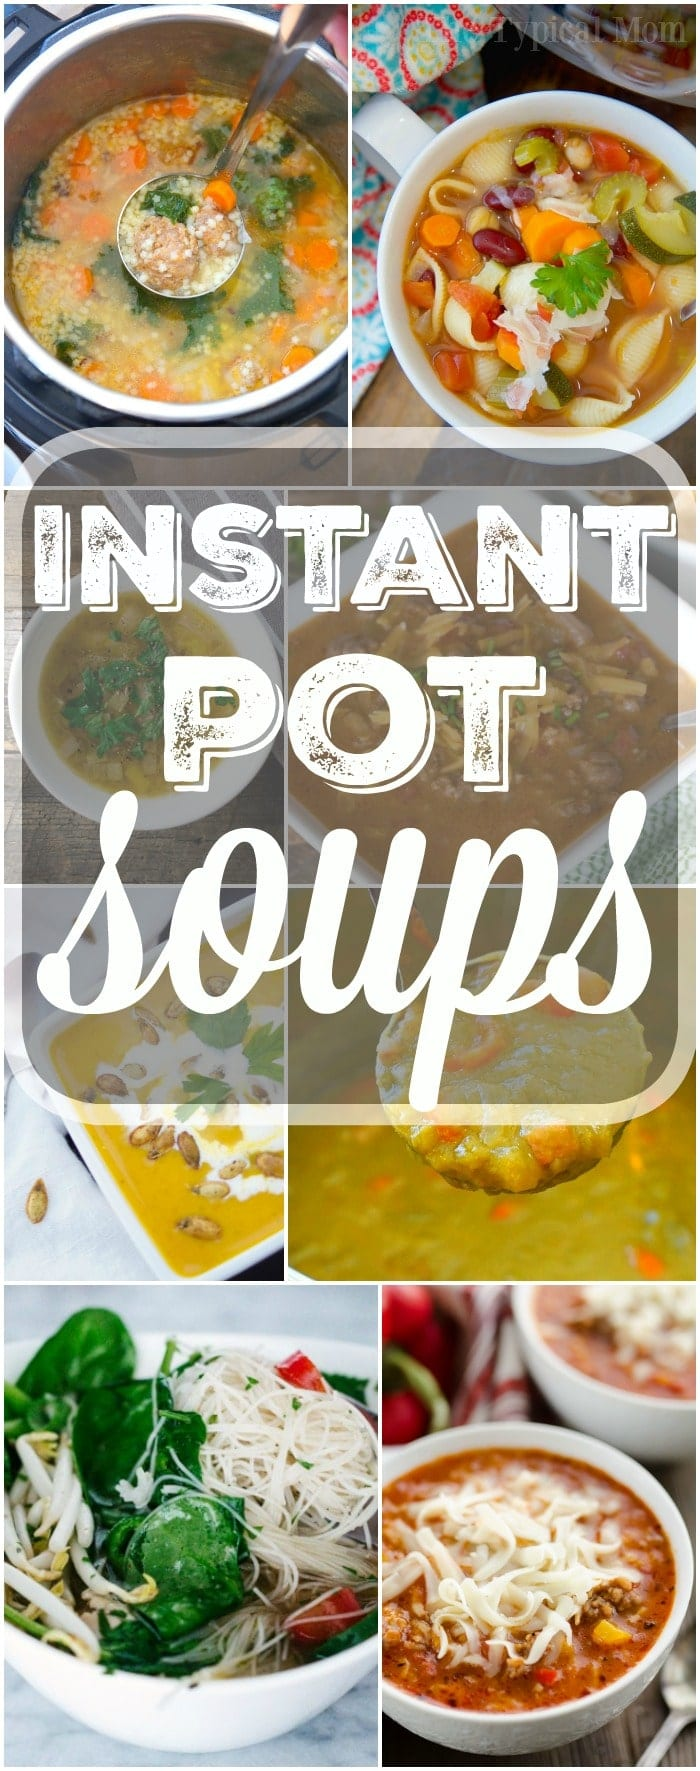 A great list of your favorite Instant Pot soup recipes are here for you to choose from! Get our your pressure cooker this winter and try something new for dinner. Creamy and healthy options all made in less than 30 minutes and sure to please everyone in your family, even your kids. #instantpot #pressurecooker #soups #soup #recipes #easy #healthy